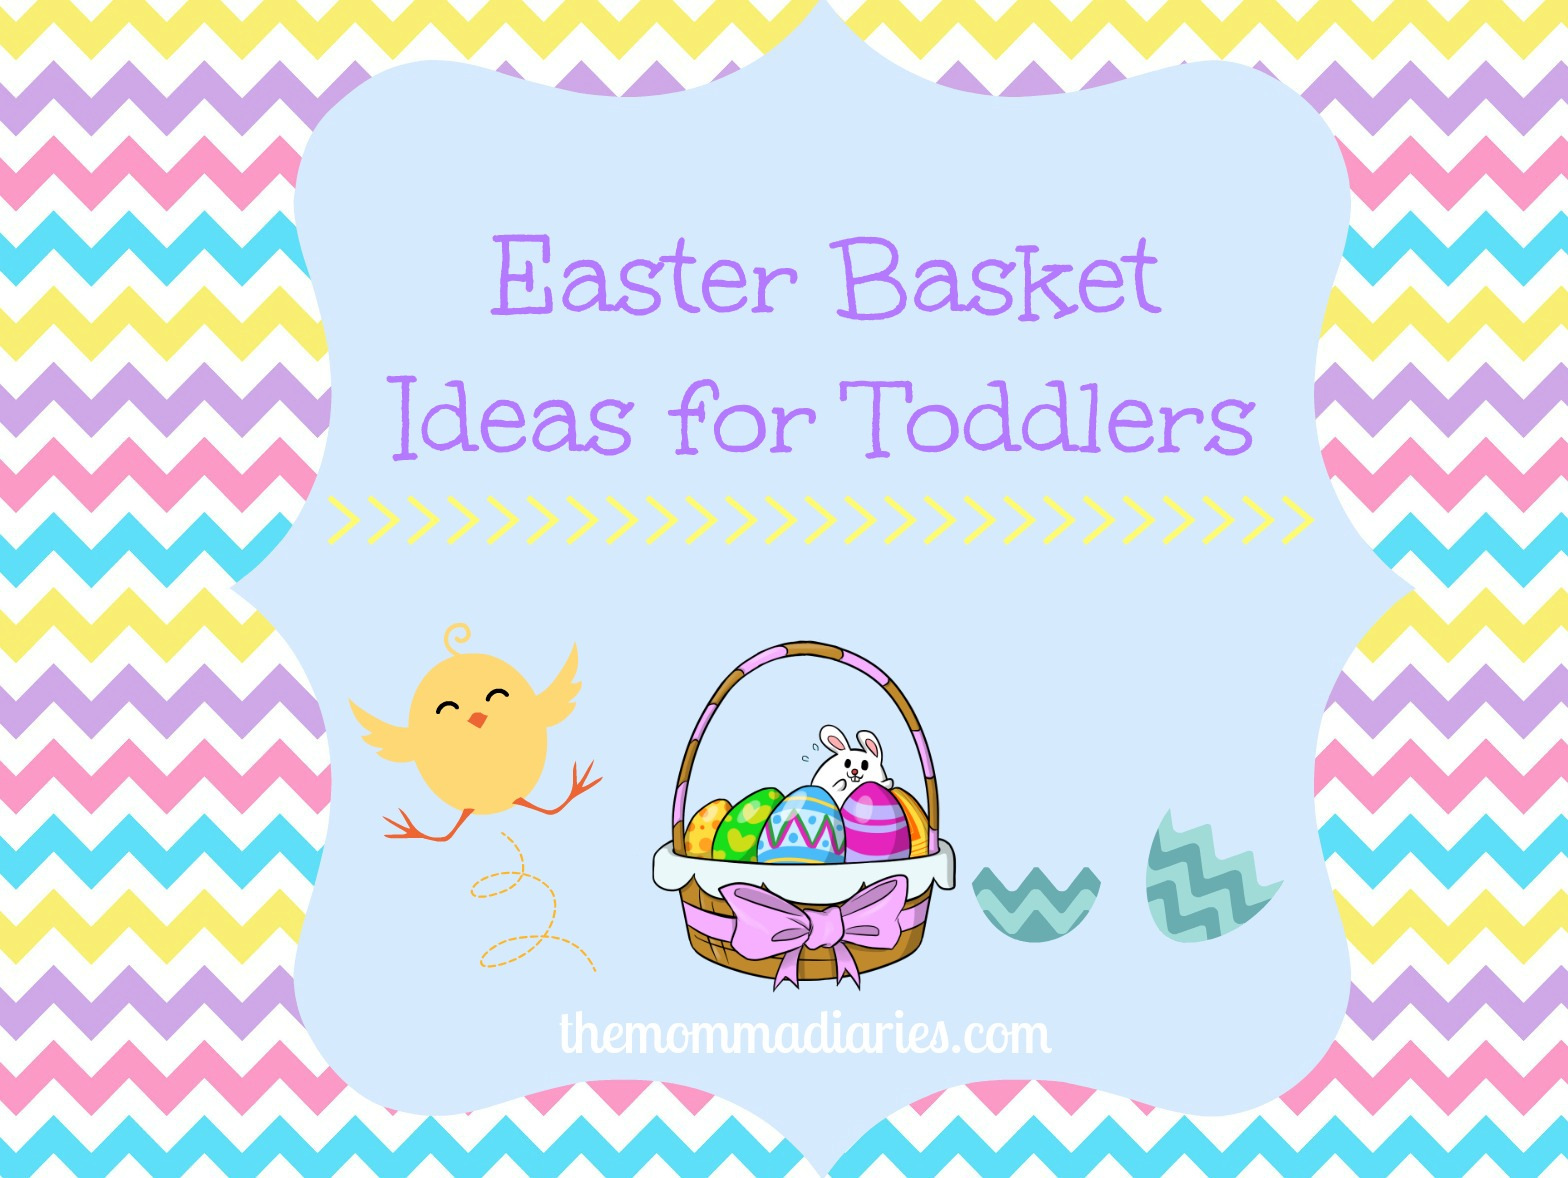 Easter basket ideas for toddlers the momma diaries easter basket ideas for toddlers toddlers easter basket ideas negle Images